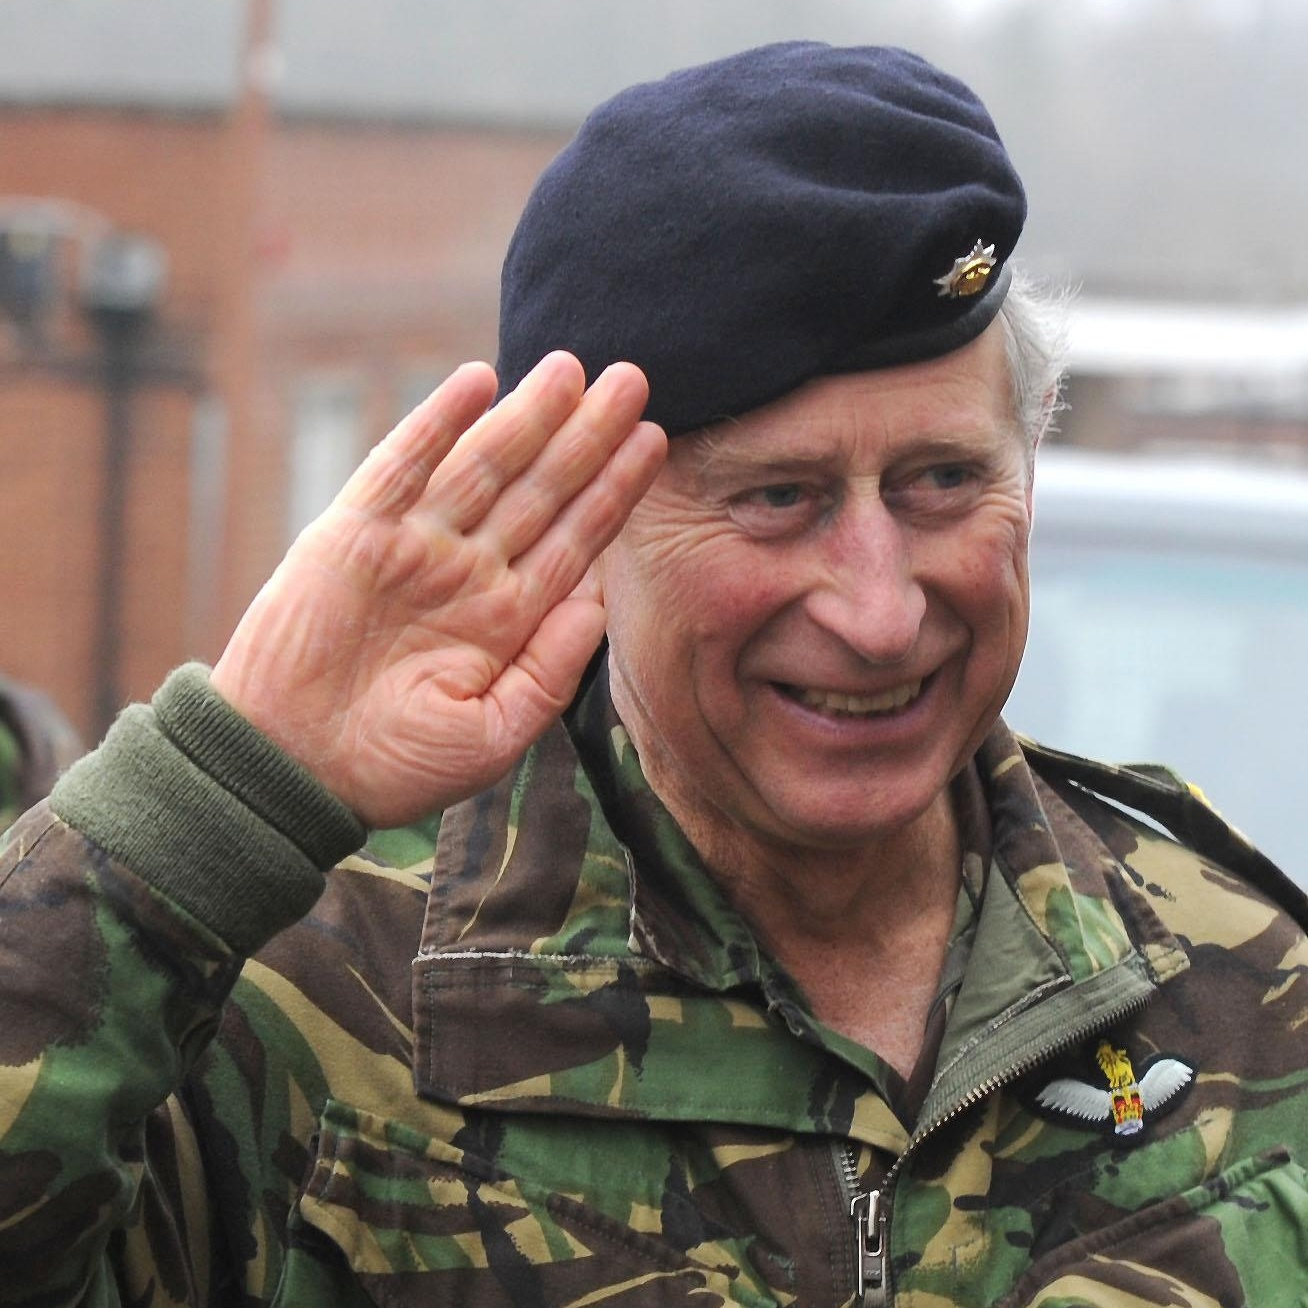 Prince Charles saluting in an Army uniform